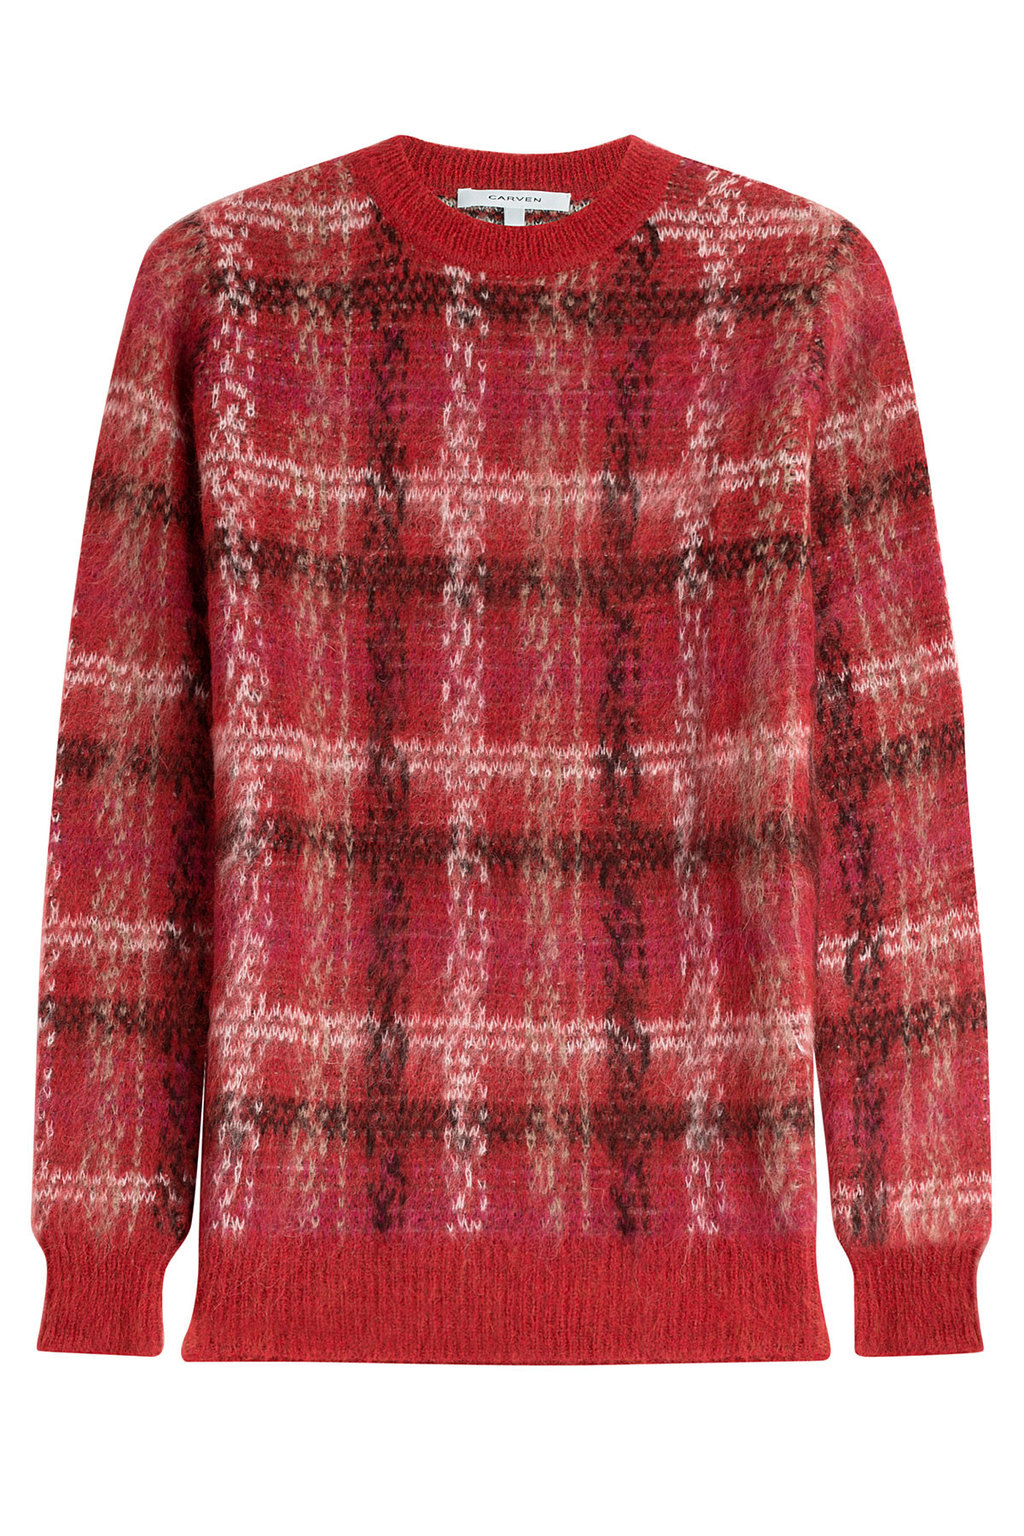 Printed Pullover With Alpaca And Mohair Red - pattern: checked/gingham; style: standard; predominant colour: true red; secondary colour: black; occasions: casual, creative work; length: standard; fibres: acrylic - mix; fit: standard fit; neckline: crew; sleeve length: long sleeve; sleeve style: standard; texture group: knits/crochet; pattern type: knitted - other; multicoloured: multicoloured; season: a/w 2015